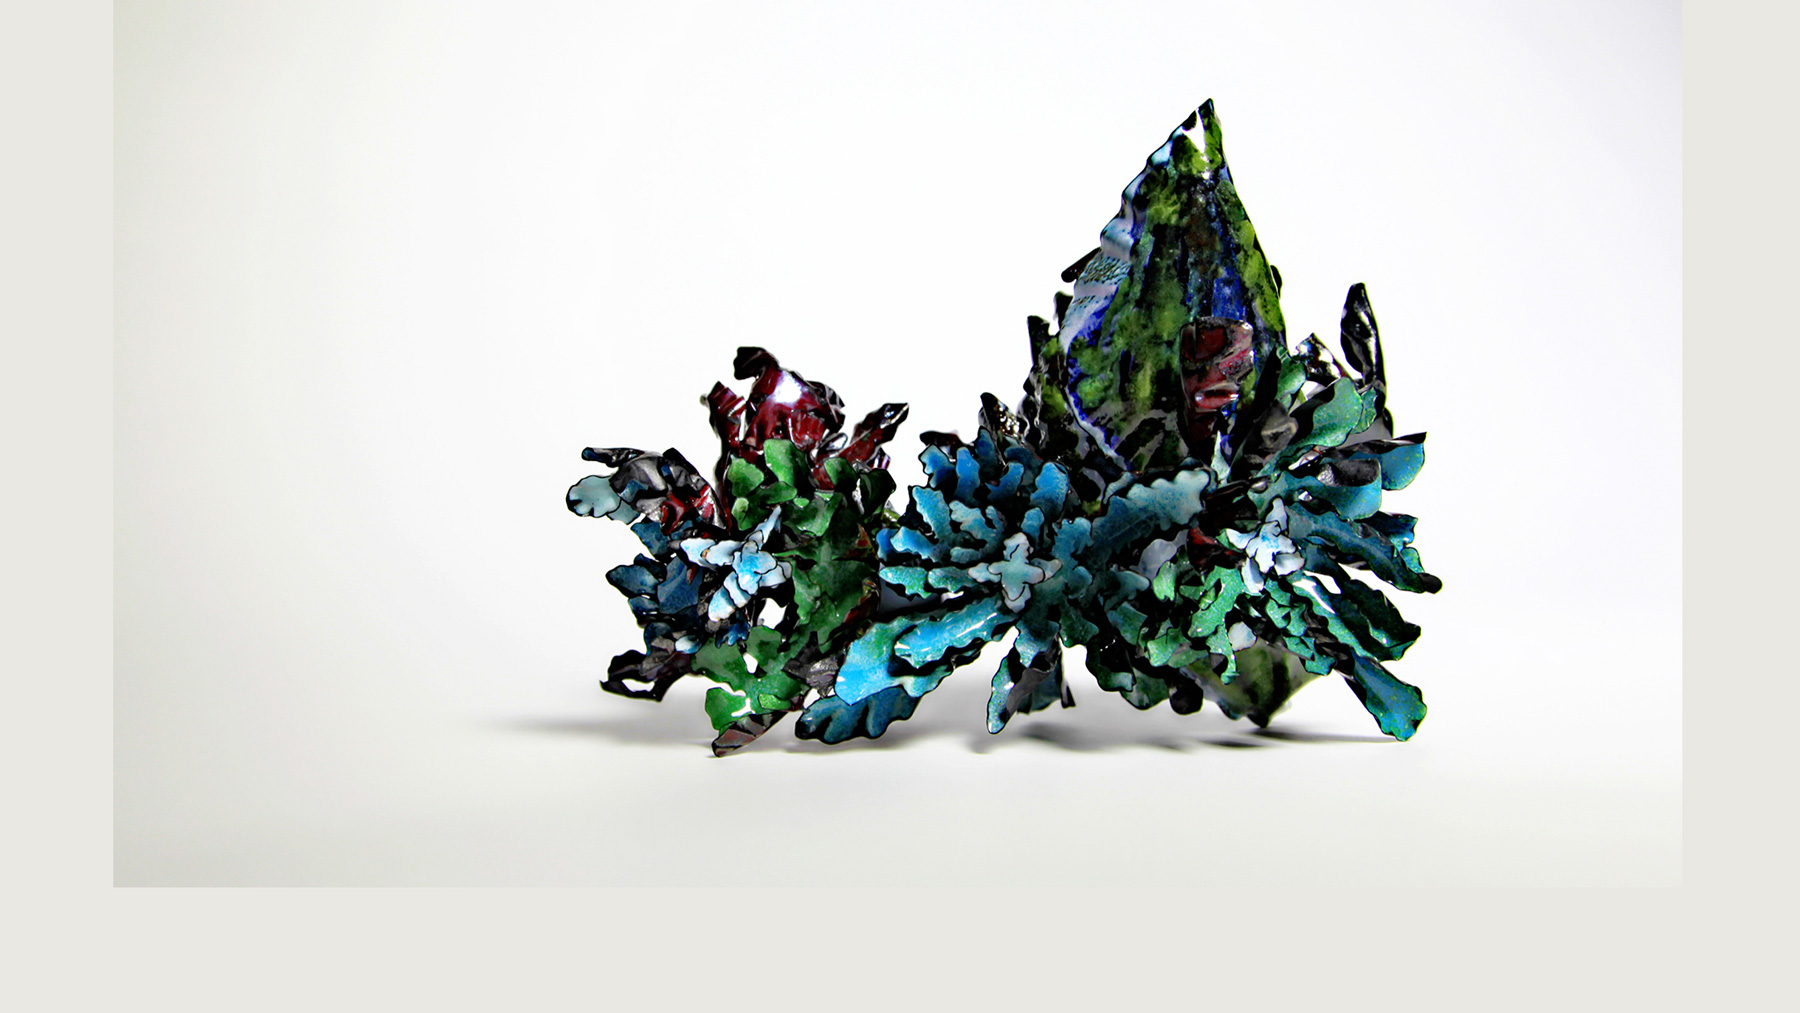 copper and vitreous enamel sculpture, courtesy of the artist, Yingqi Puffy Zhao